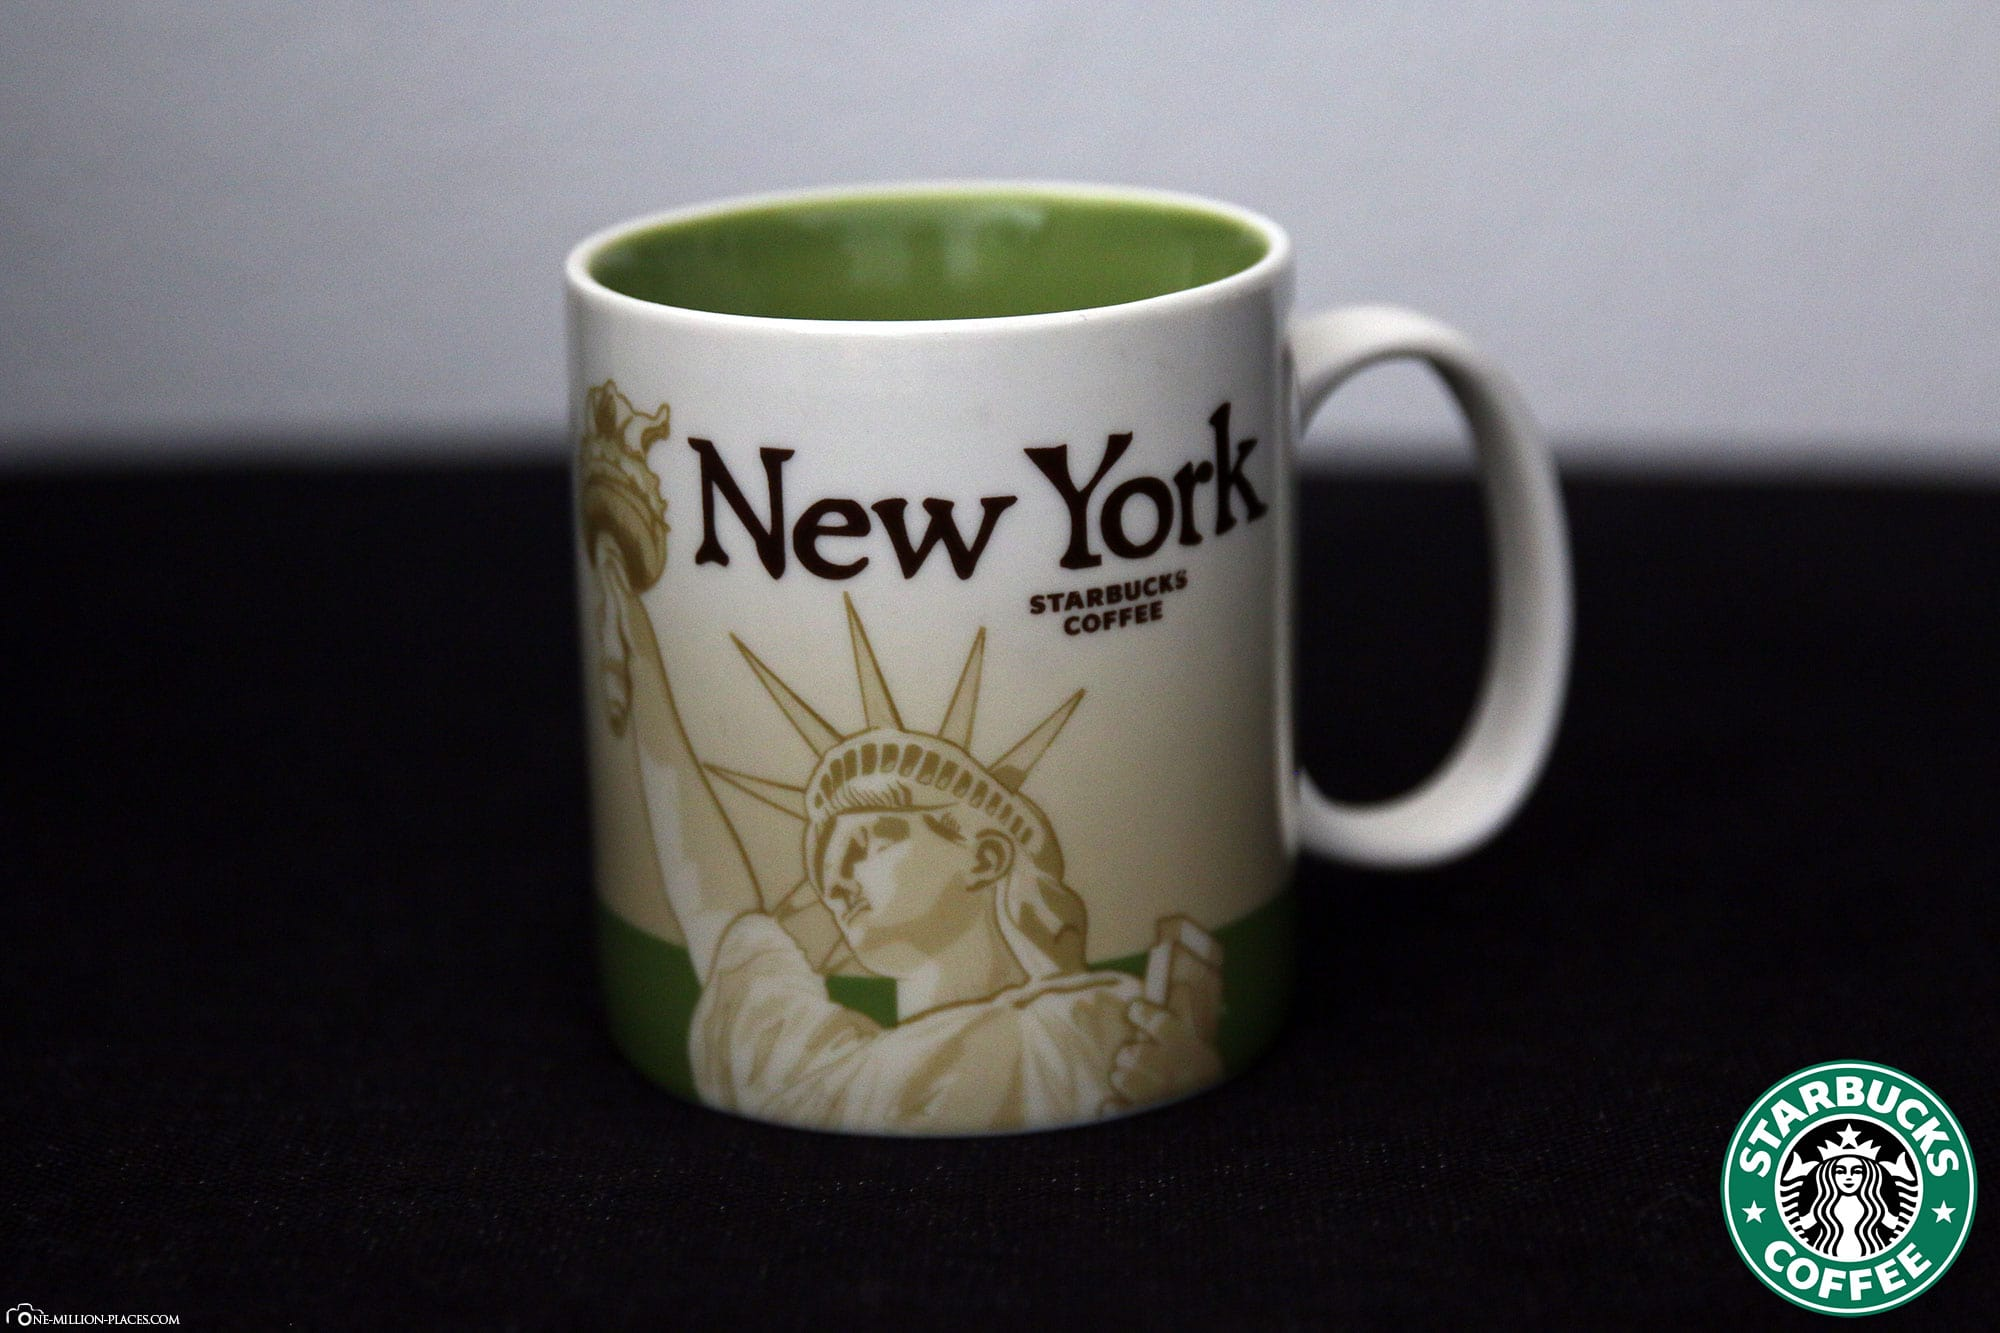 New York, Starbucks Cup, Global Icon Series, City Mugs, Collection, USA, Travelreport